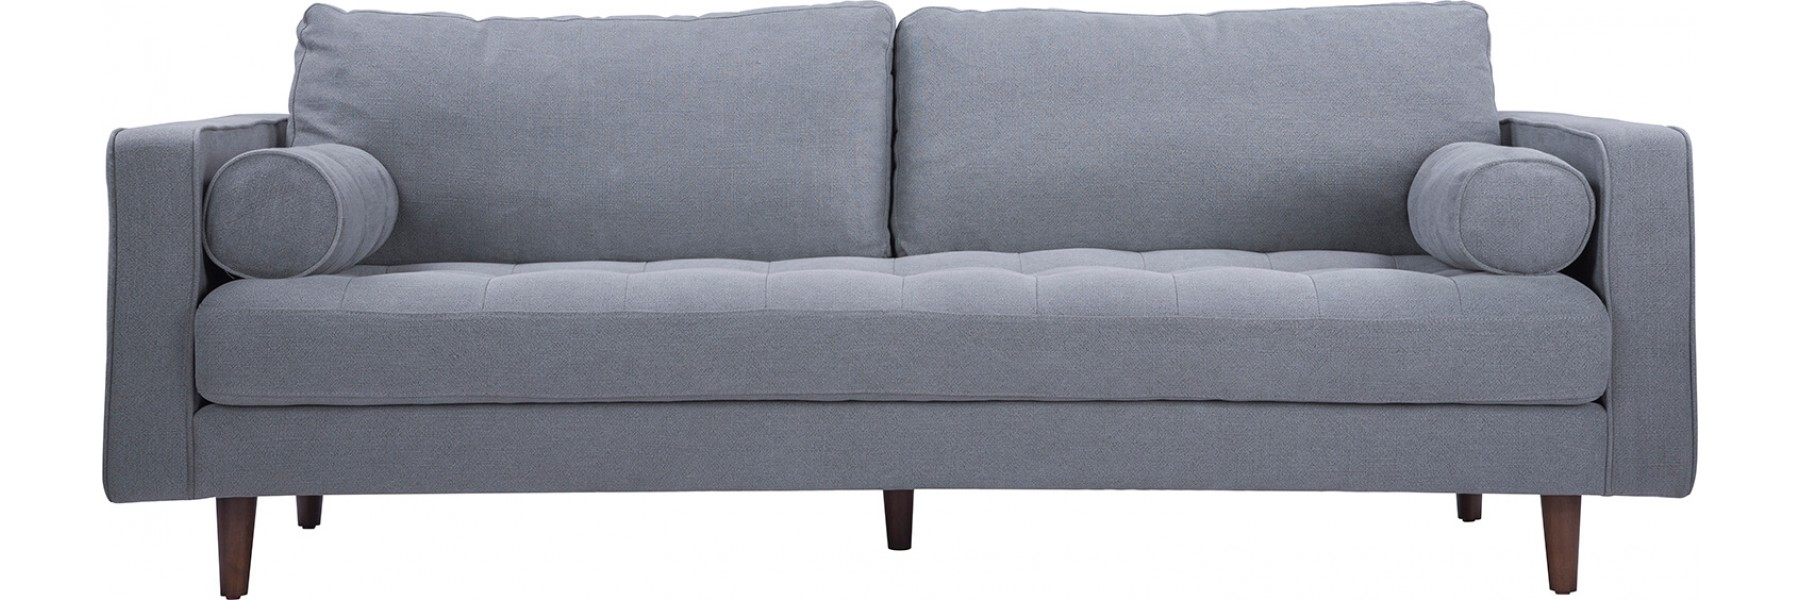 Sawyer Sofa Stoned Slate Pertaining To Nico Grey Sectionals With Left Facing Storage Chaise (Image 21 of 25)